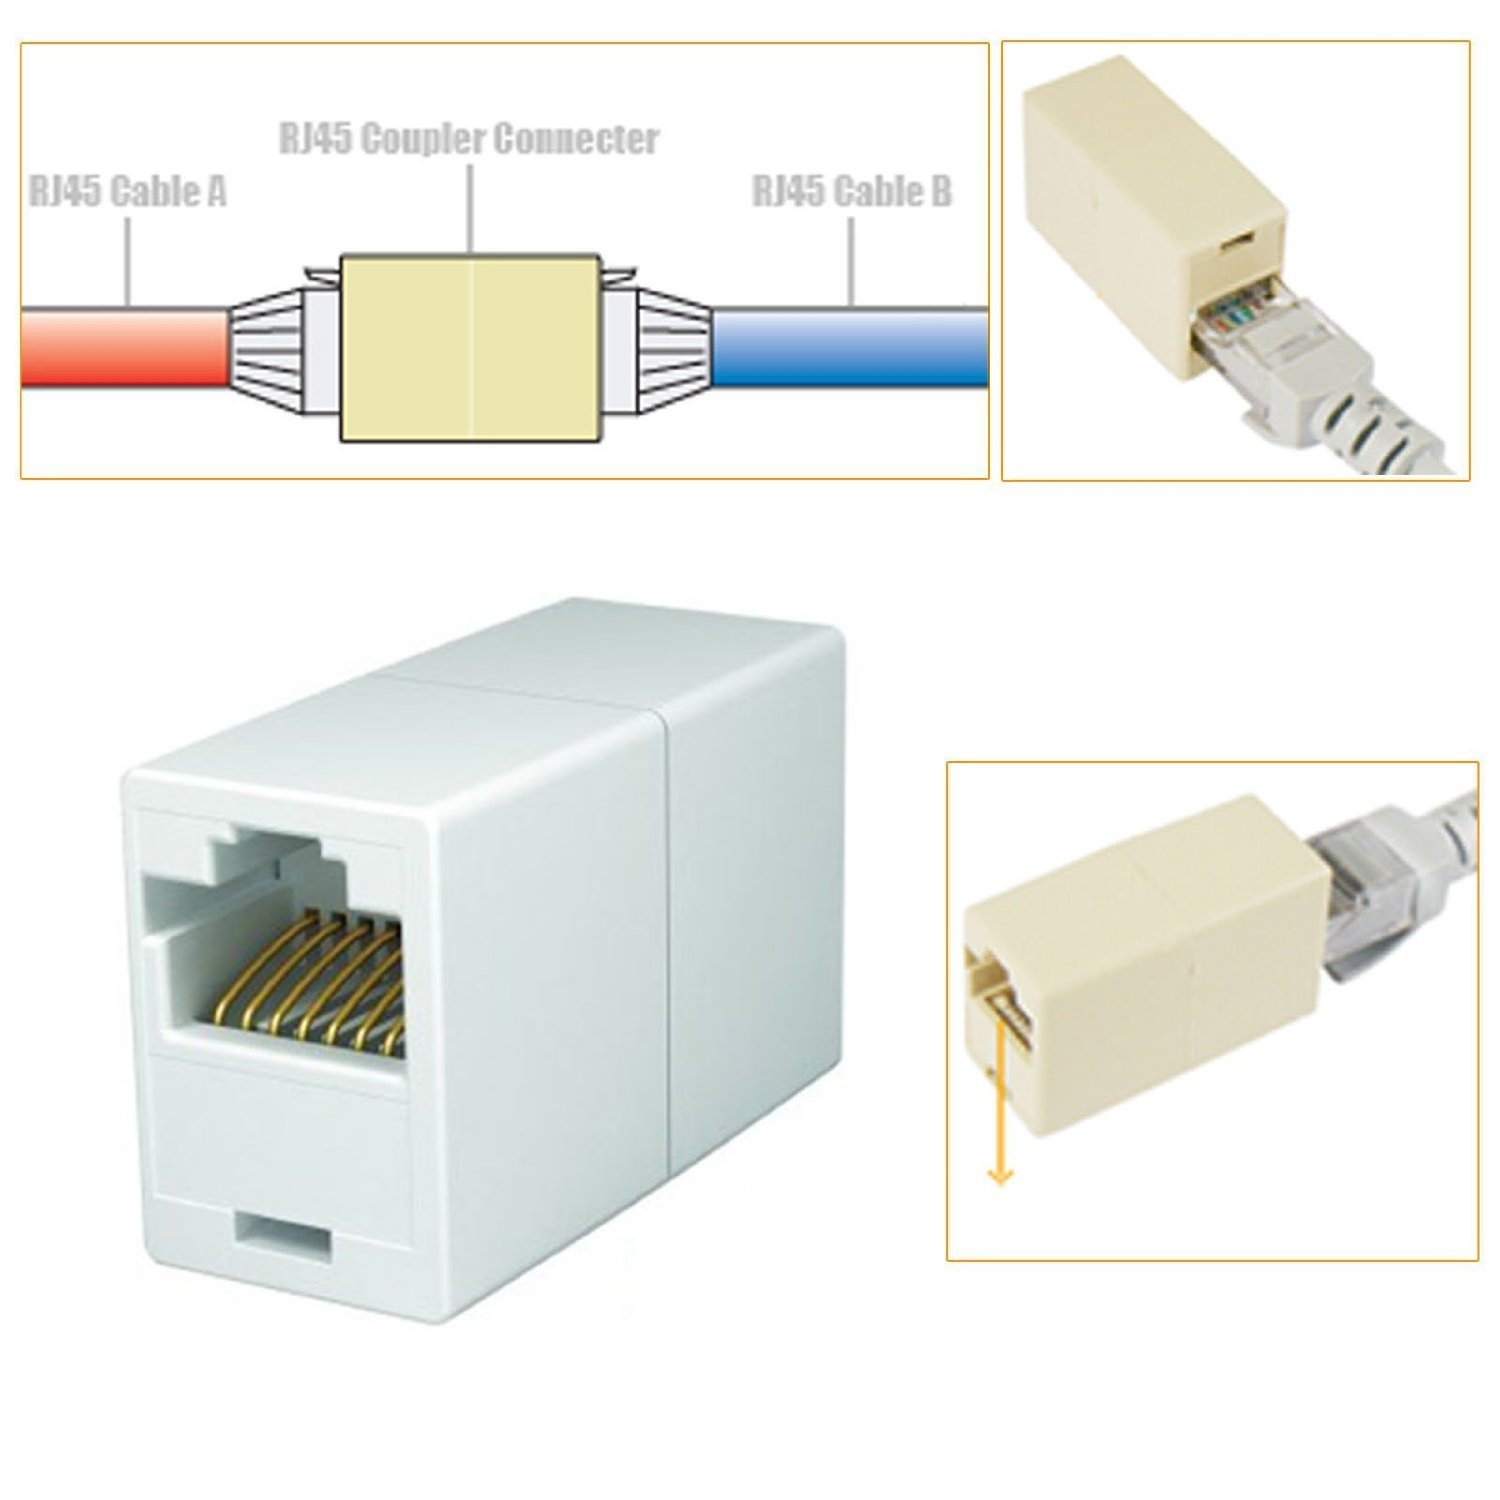 rj45 coupler wiring diagram gallery